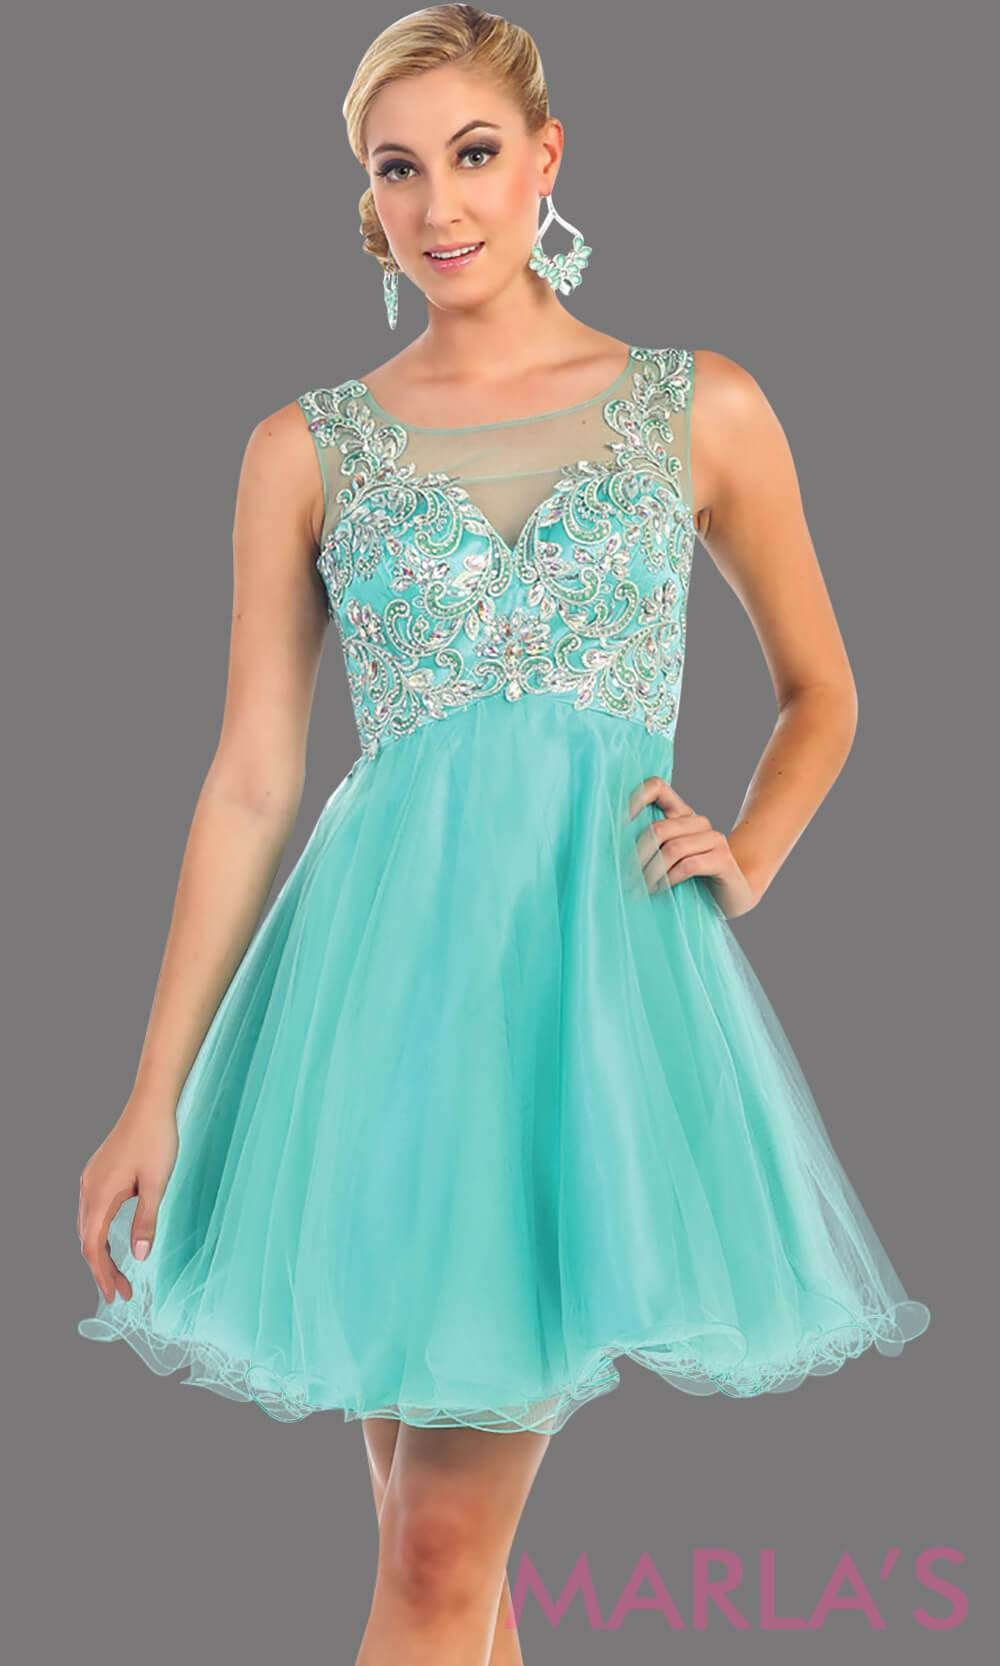 5f825c8c36a 1133-Short Puffy mint grade 8 grad dress with rhinestone bodice. This is a  perfect short prom dress